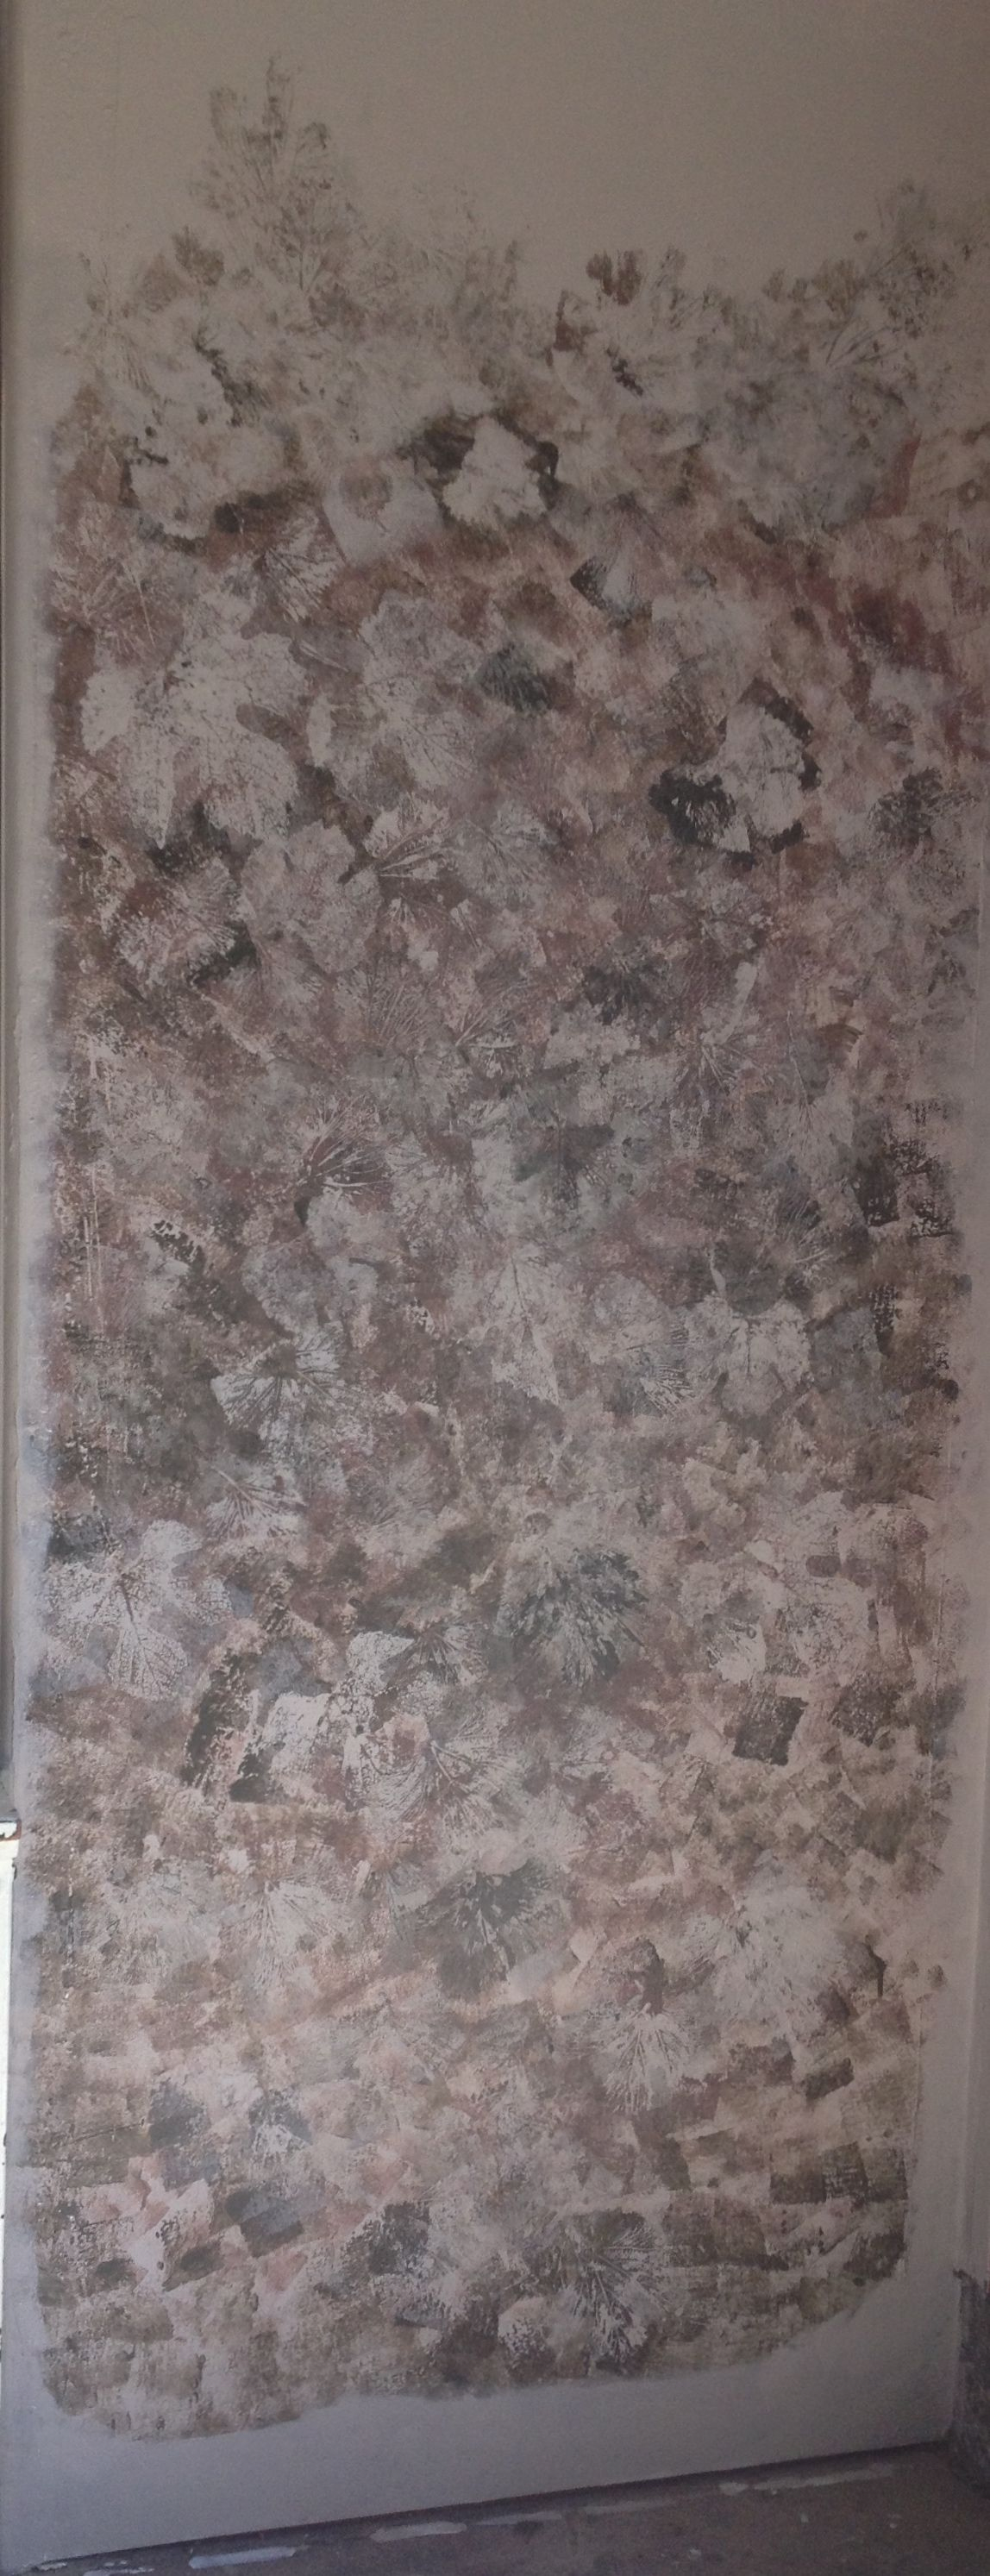 How To Paint Camouflage On A Wall Camouflage Patterns Sponge